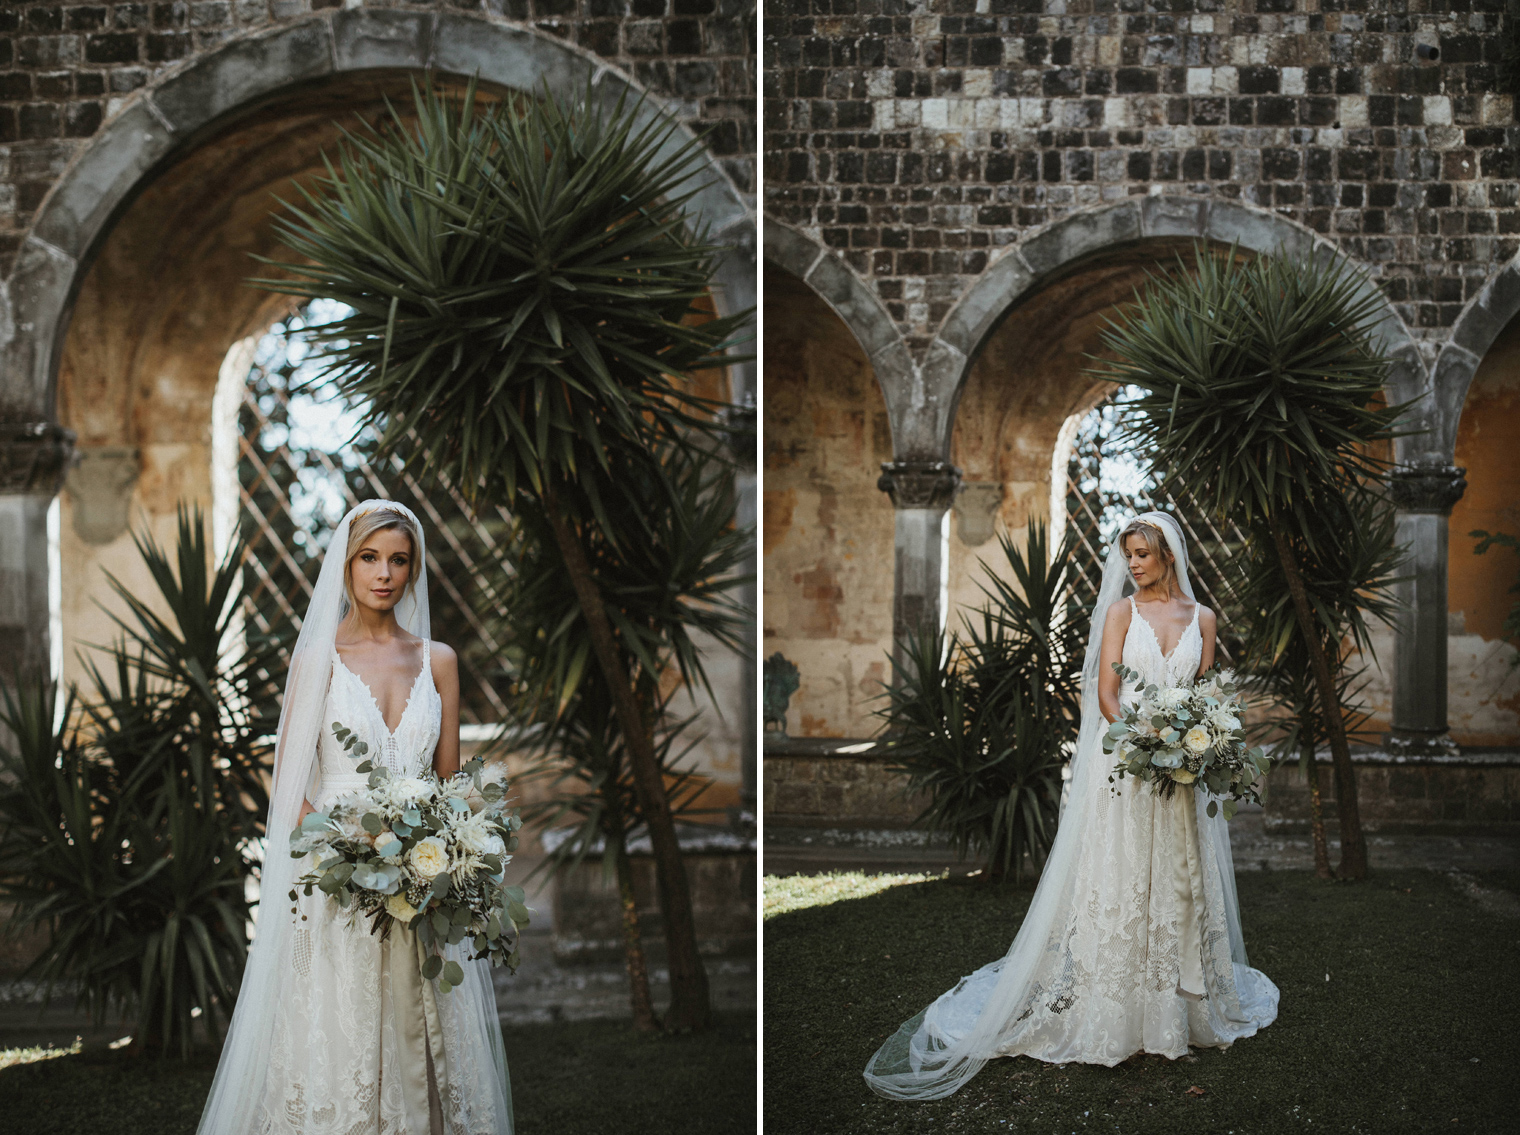 Beautiful bride wearing Flora Bridal wedding dress at Castello Di Vincigliata